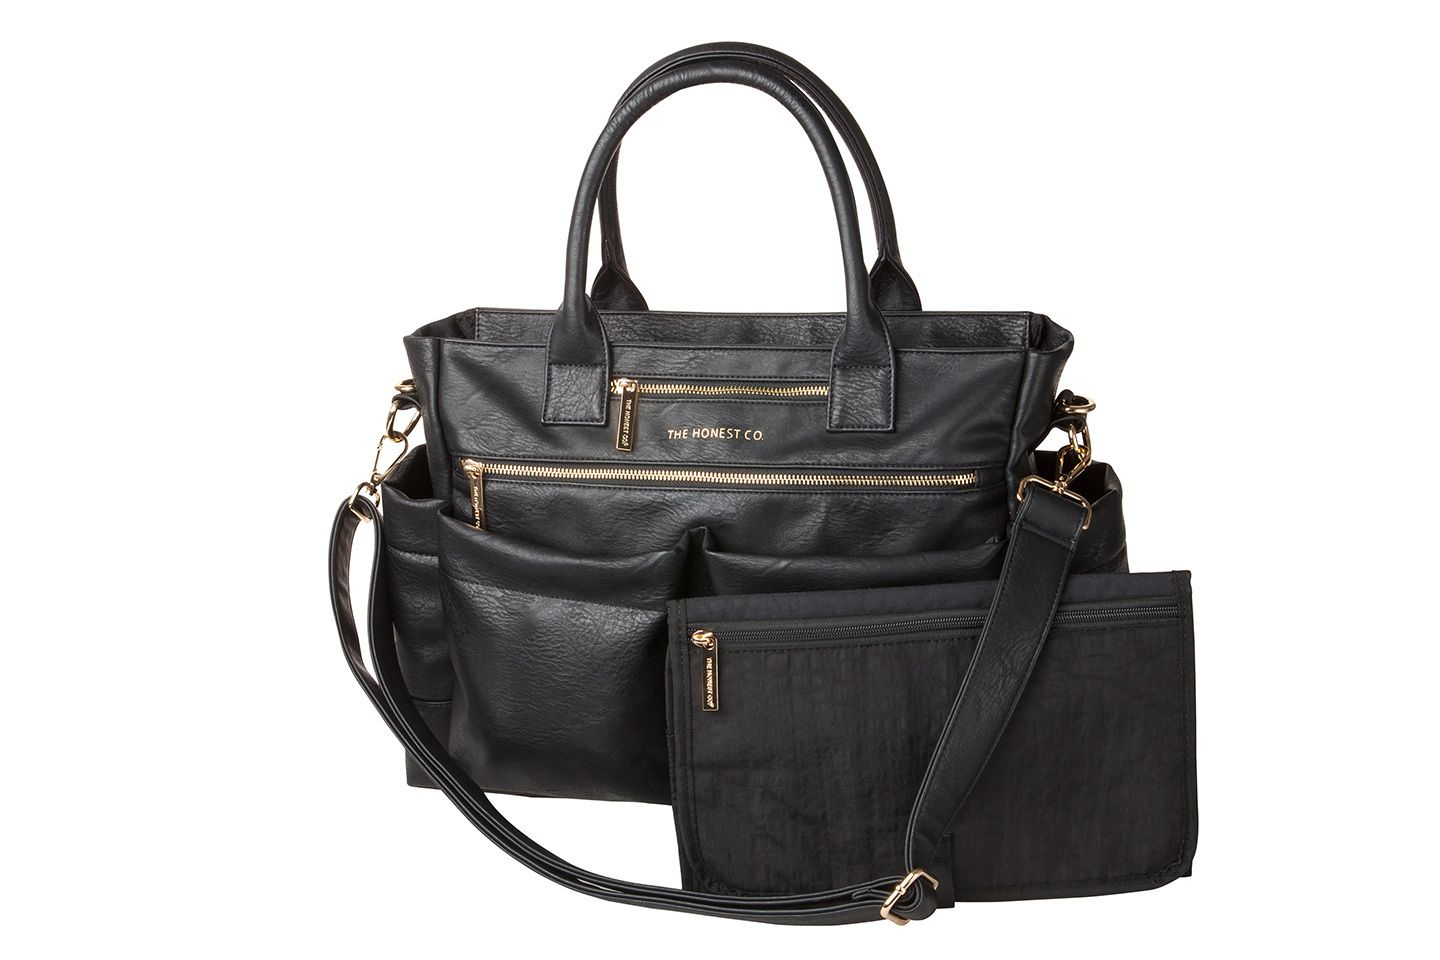 Cross Functional And Super Chic For Day To Night Versatility The Honest Company S Everything Tote Is A One Of Kind Essential